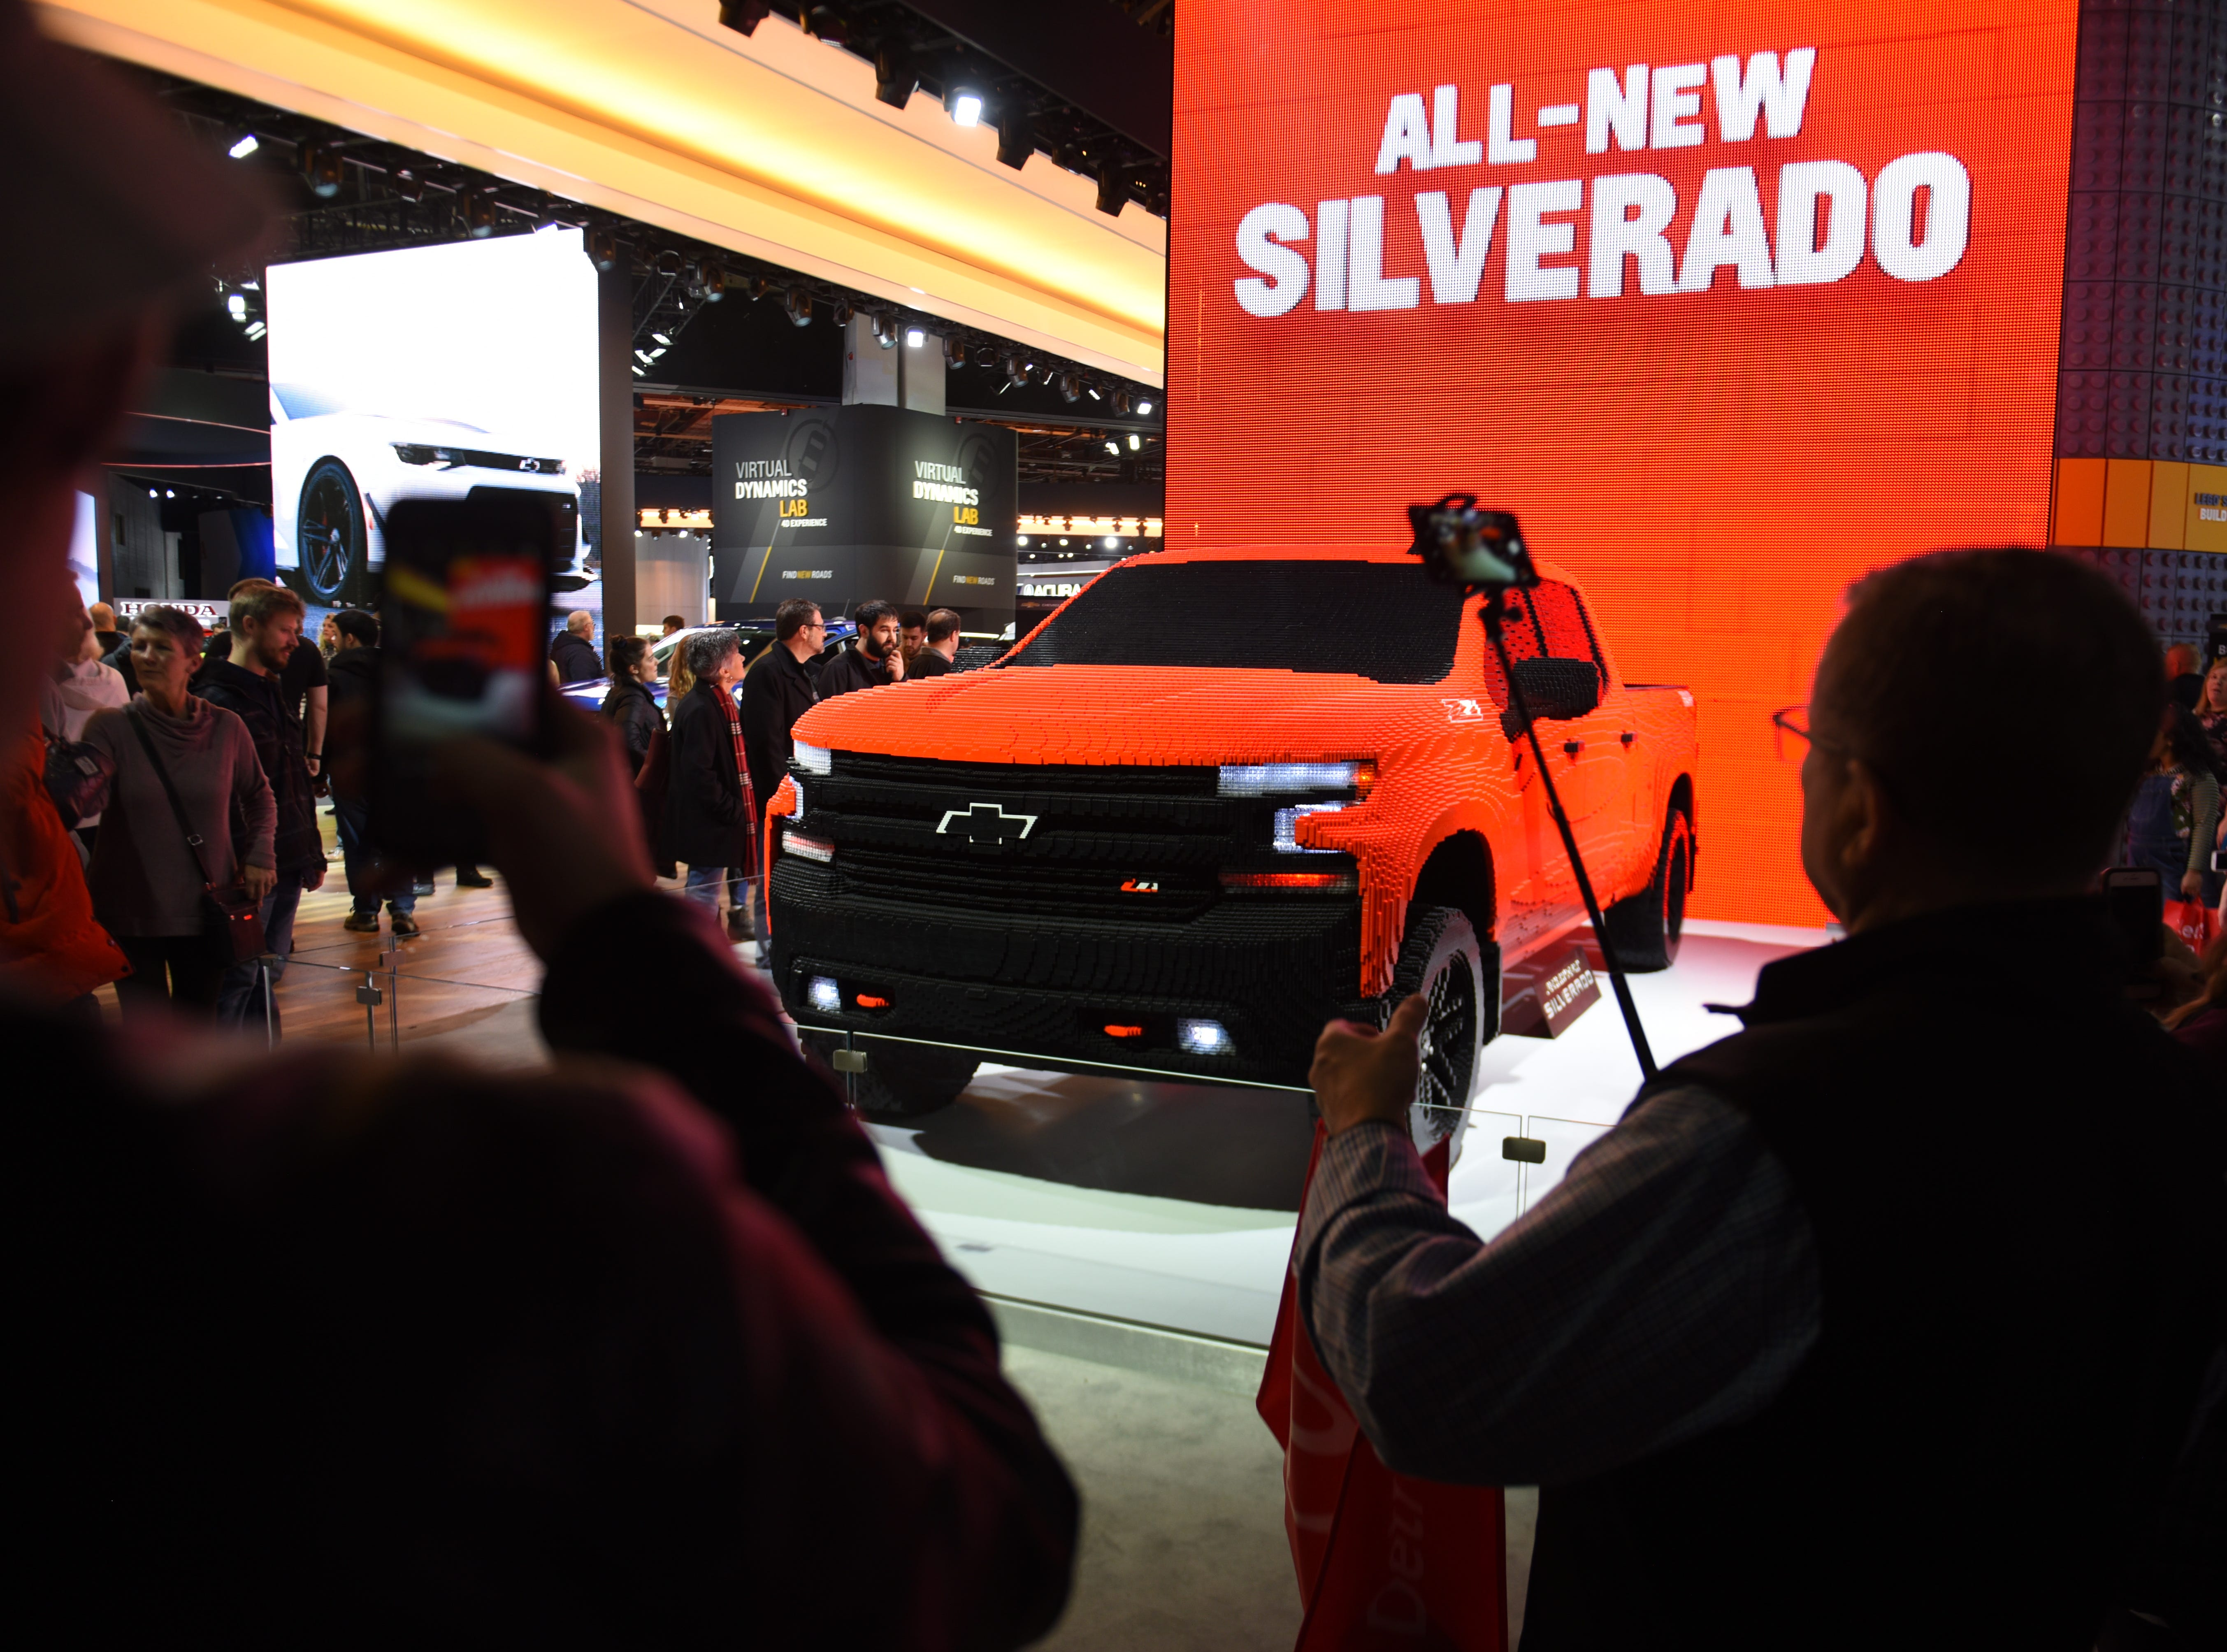 A life-sized Lego Chevrolet Silverado is on display at the 2019 North American International Auto Show